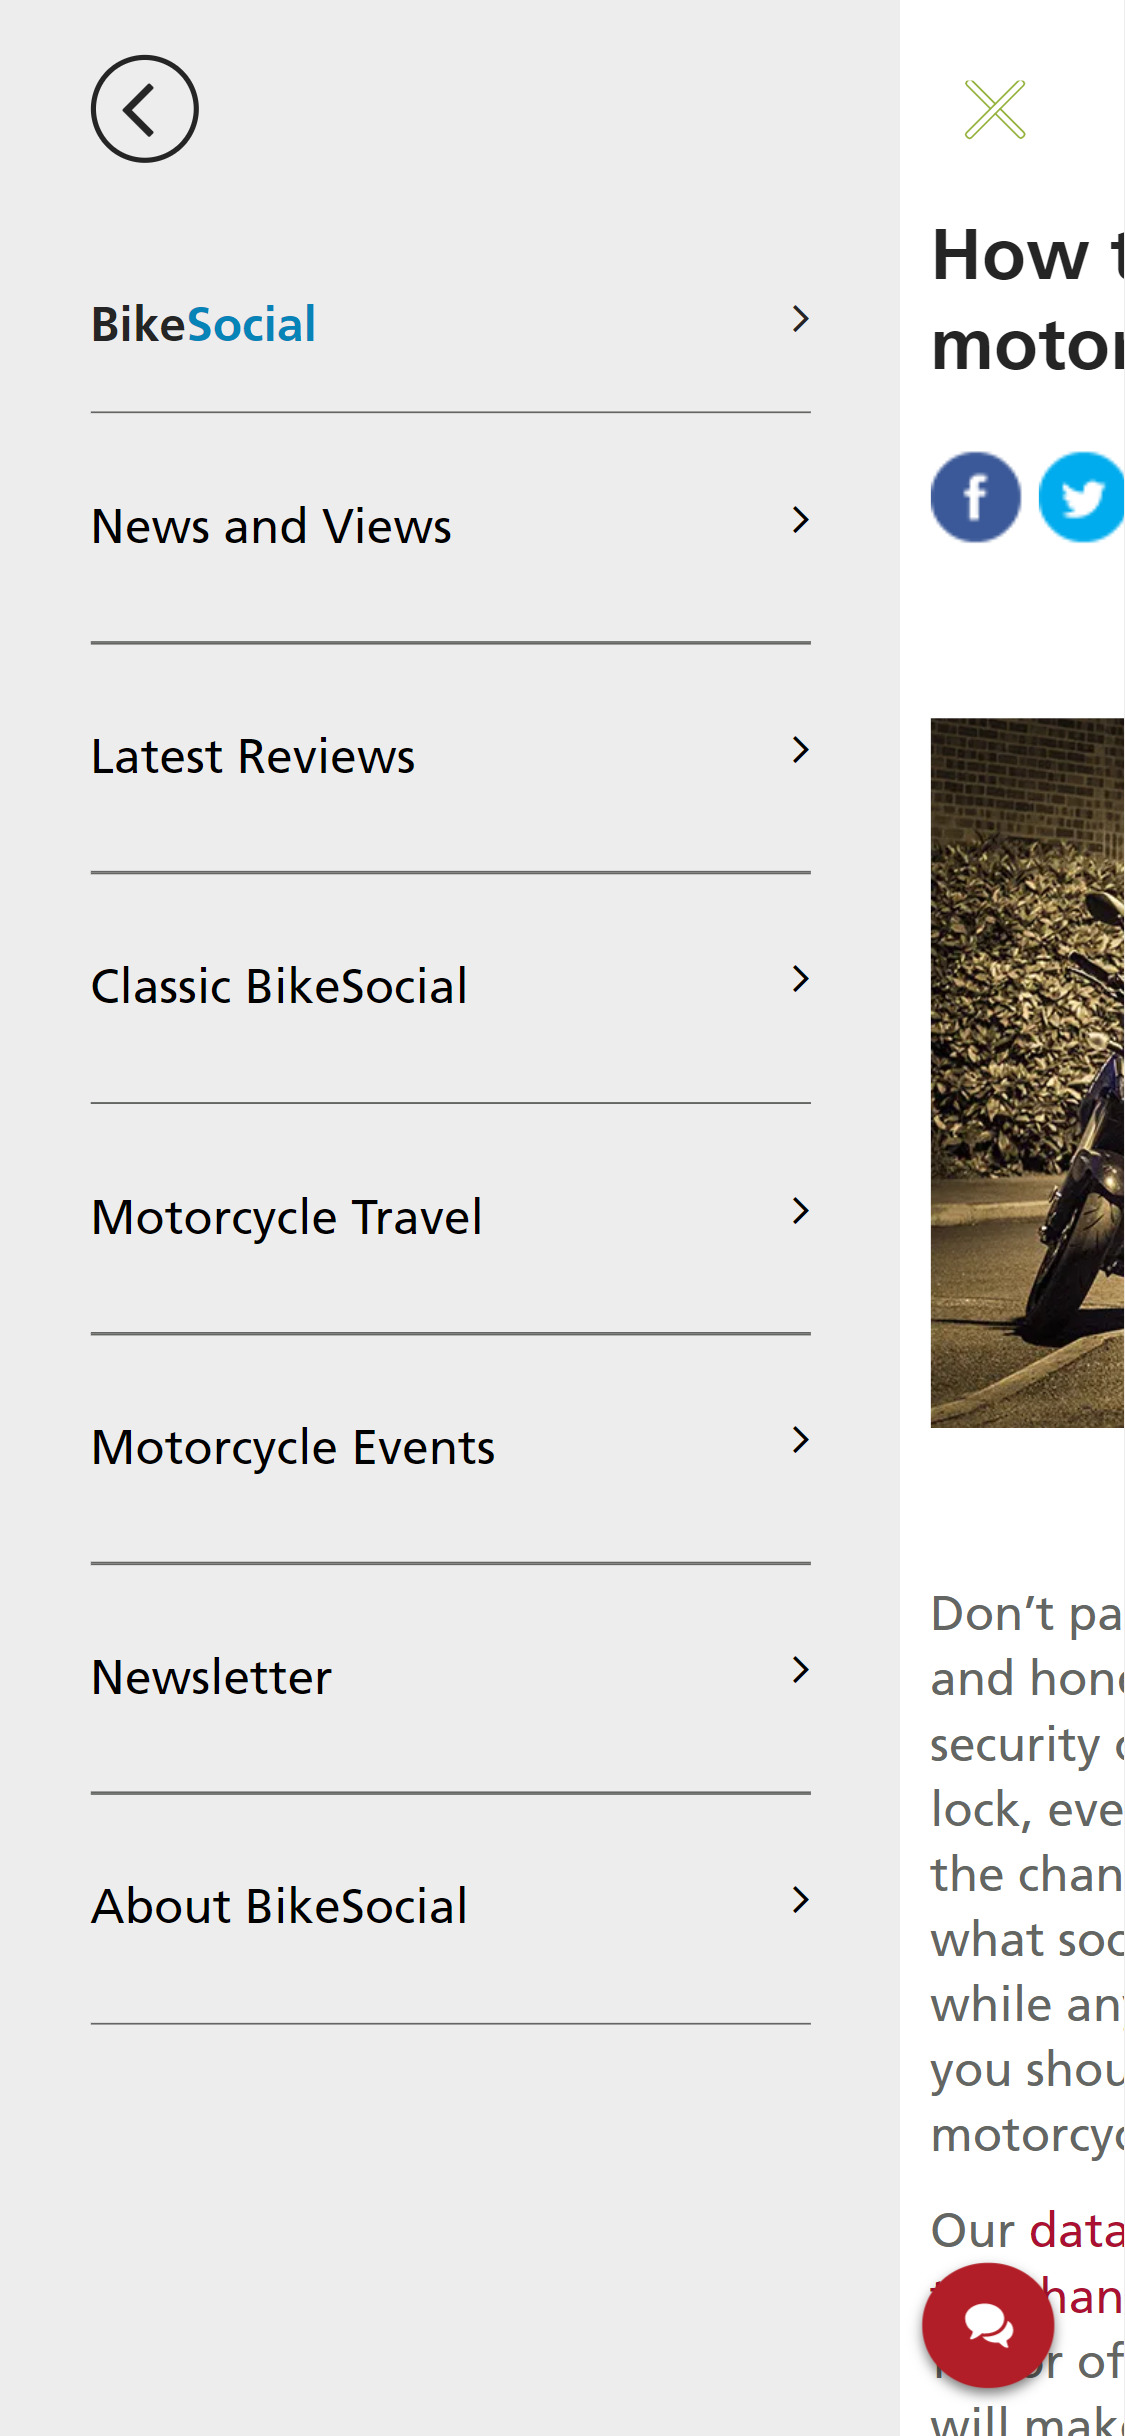 Bennetts BikeSocial content marketing page (example)